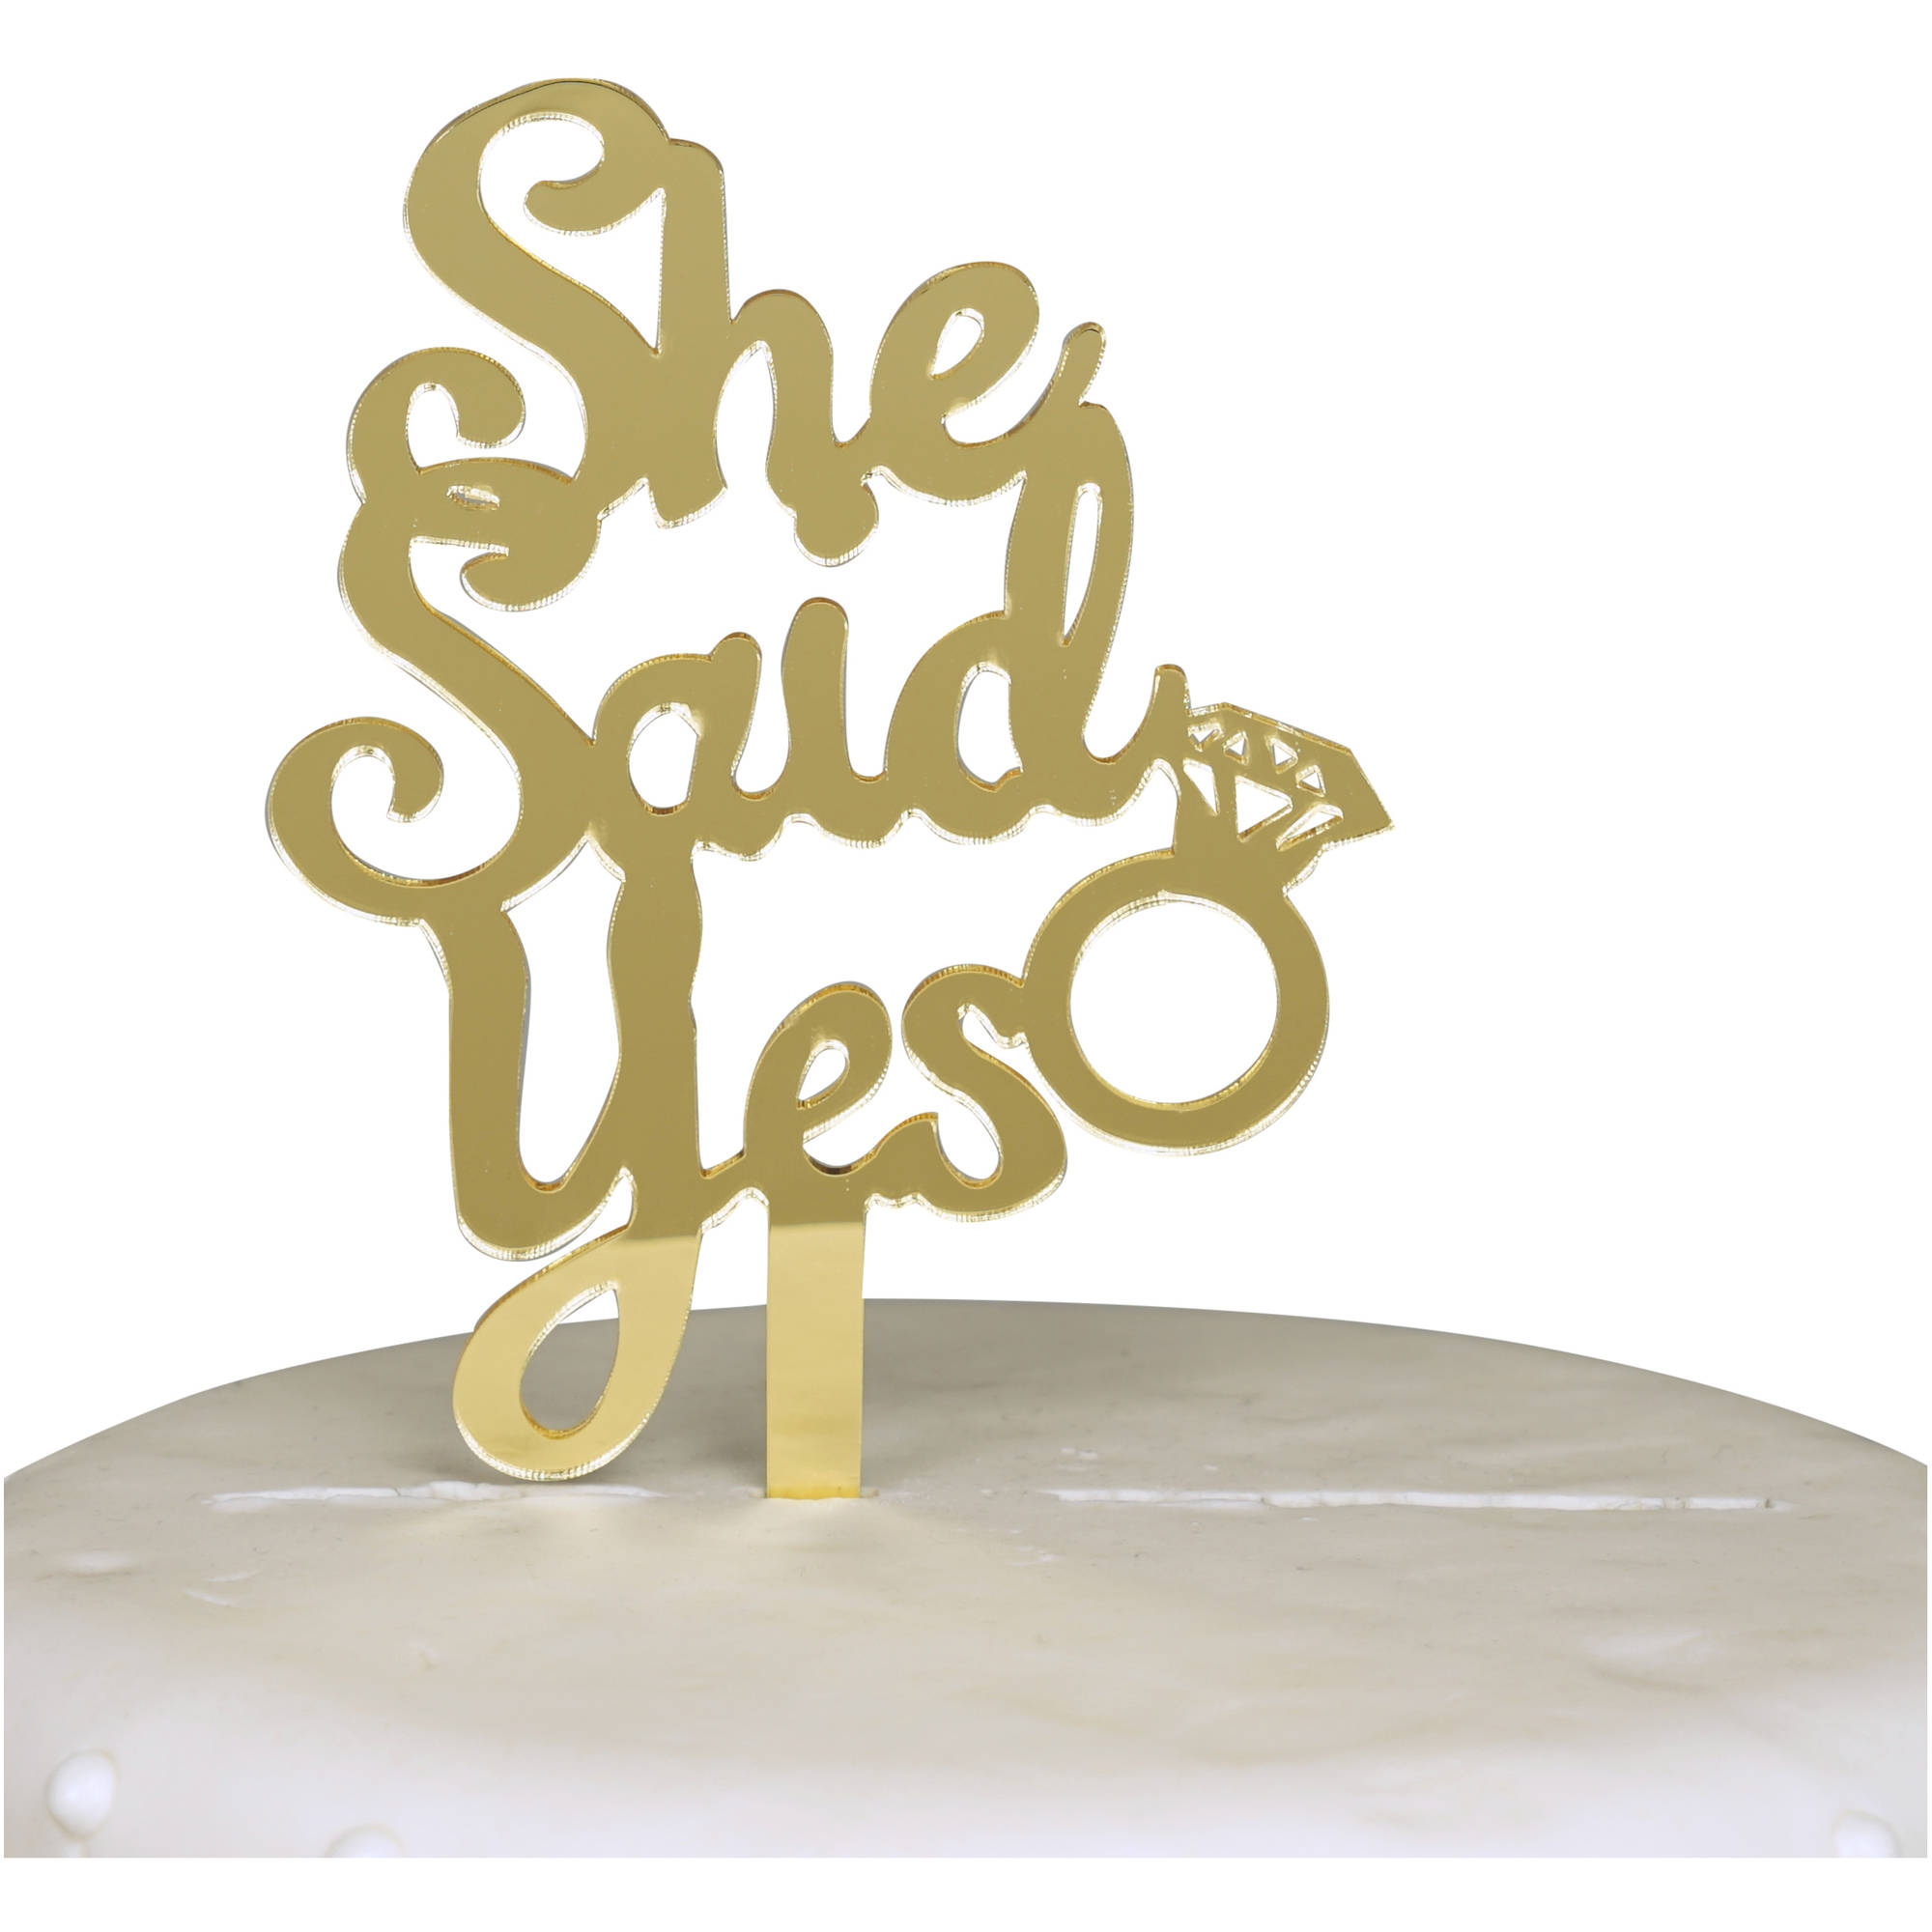 She Said Yes Engagement Acrylic Cake Topper, Gold Mirror